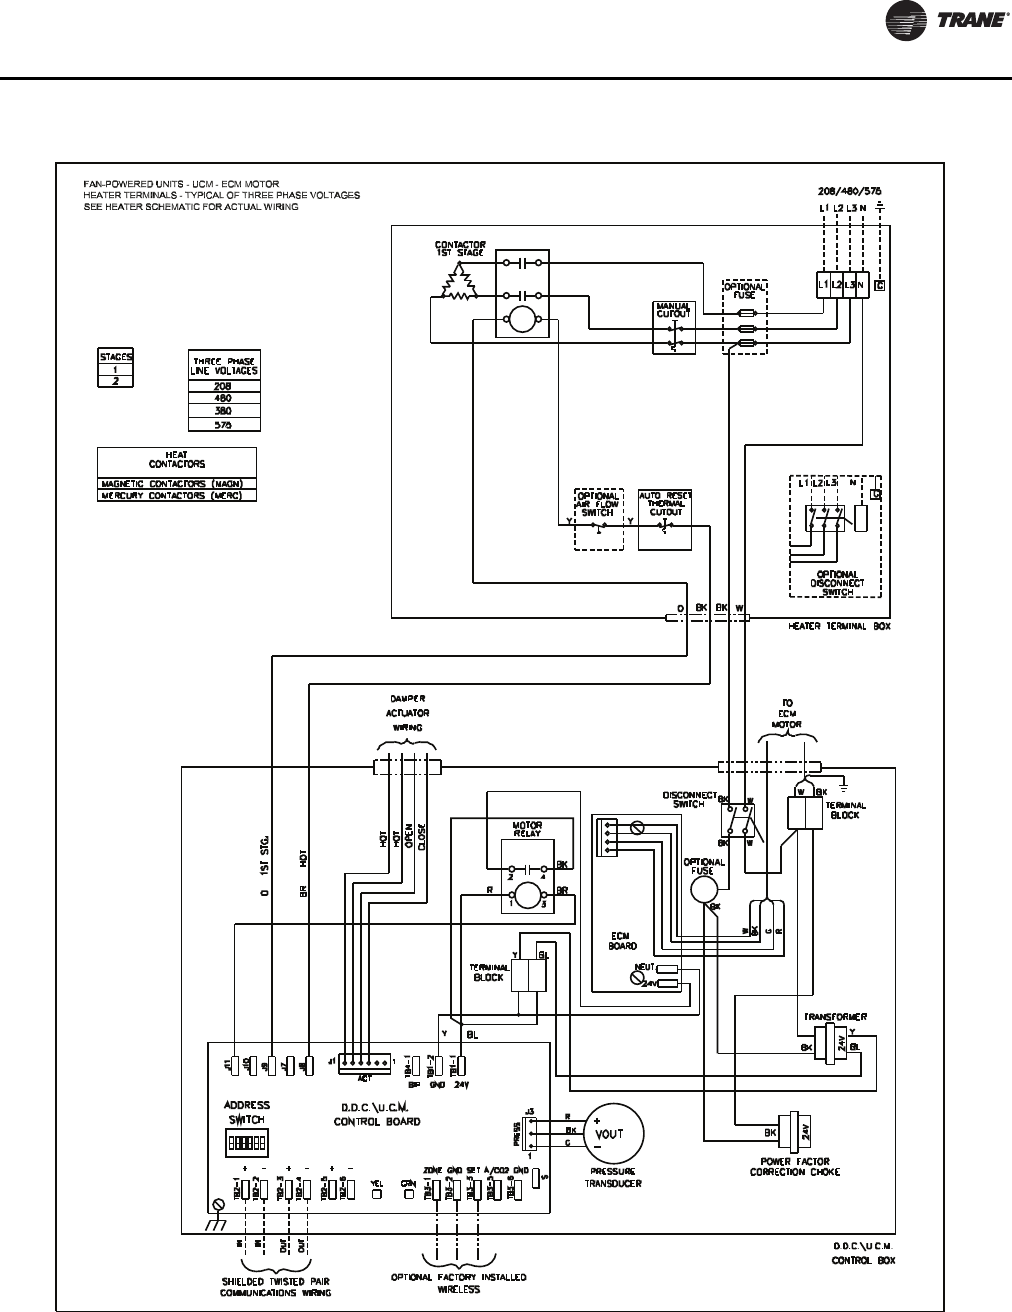 Trane Vav Box Wiring Diagram Circuit And Hub Ycd Ycd060 Specifications Fan Powered Boxes Cone